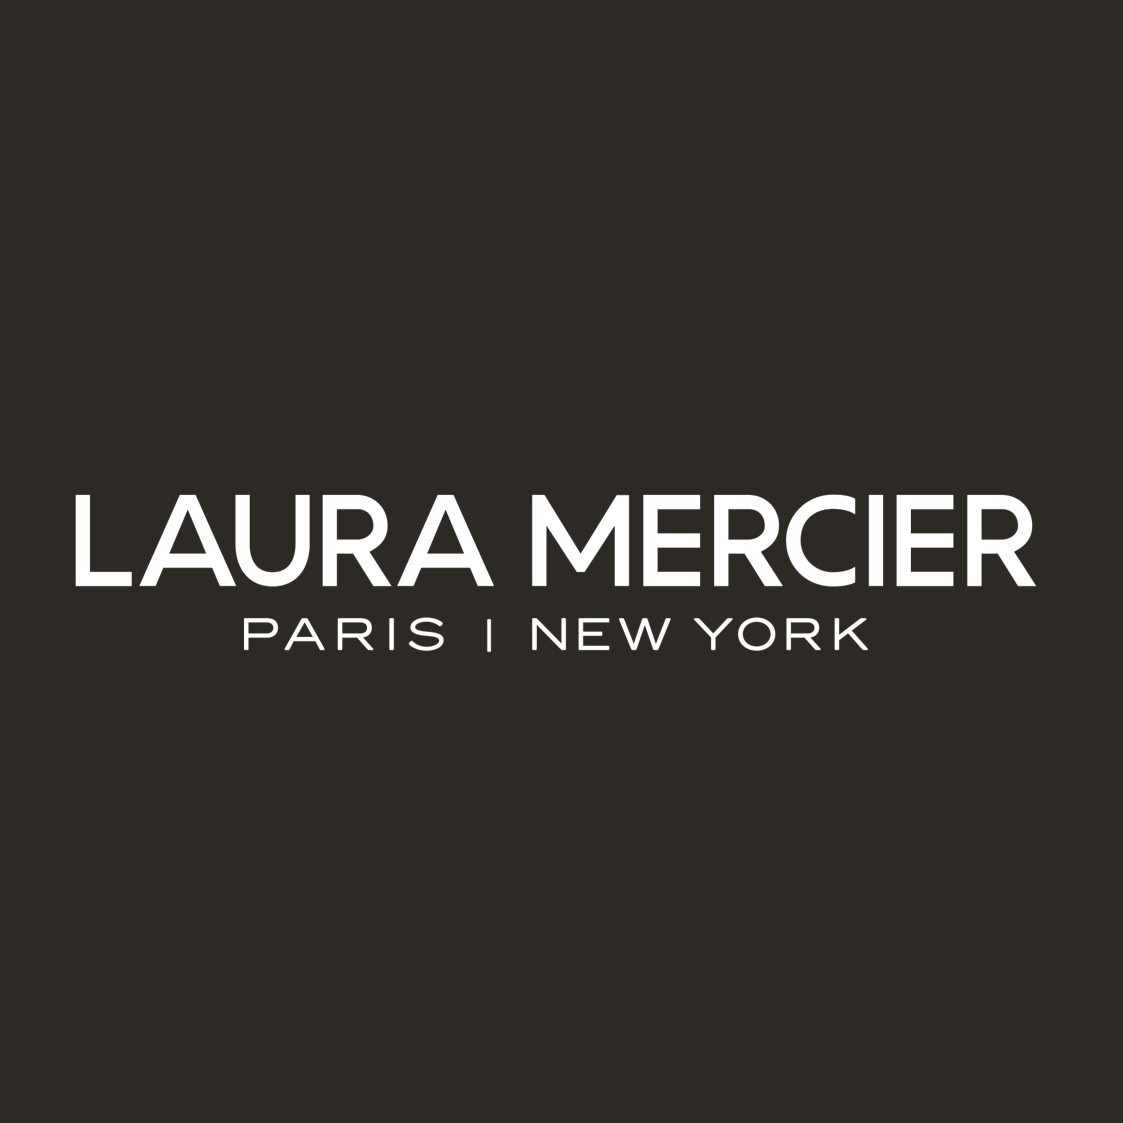 Laura Mercier GIFs.